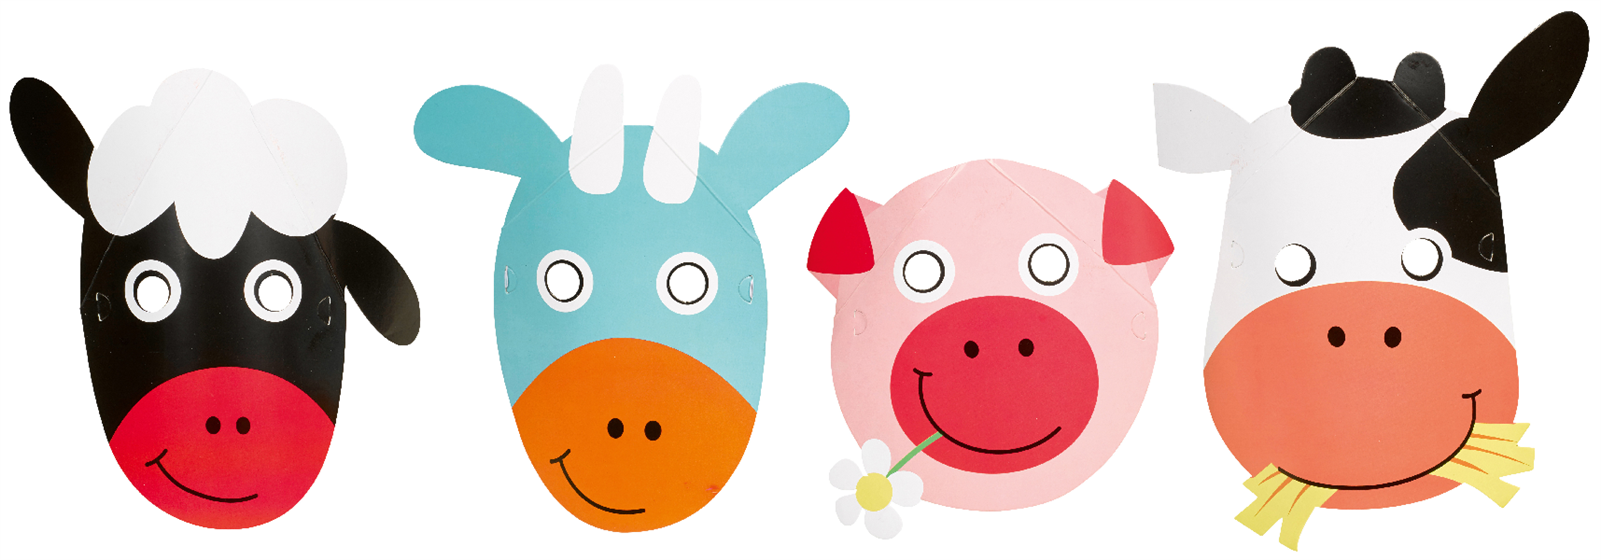 Party Masken Der kleine Bauernhof / Farm Fun